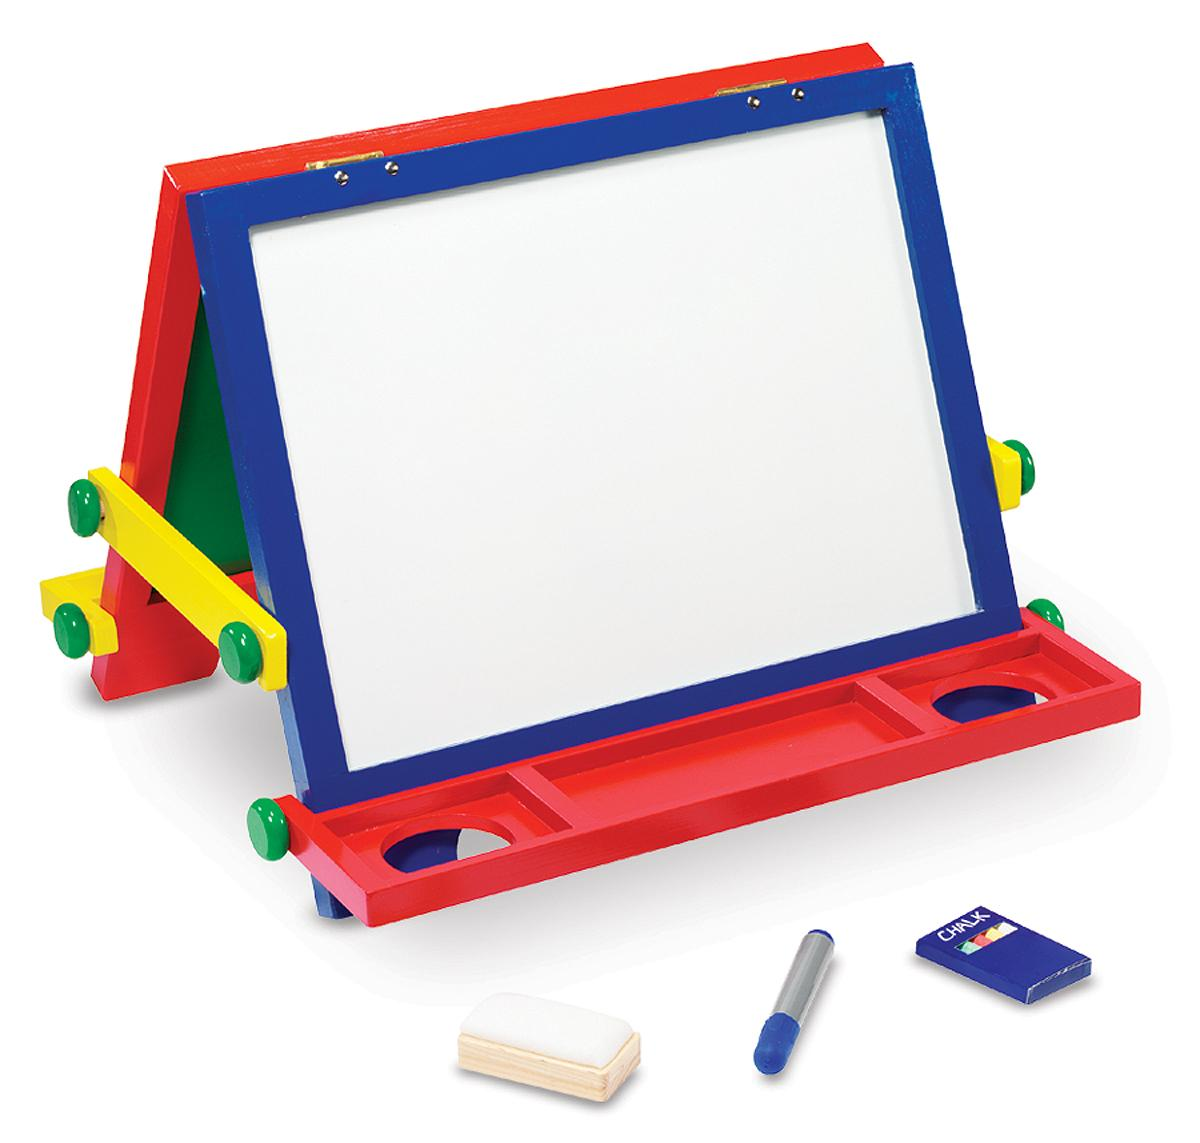 Le Tabletop Easel From China